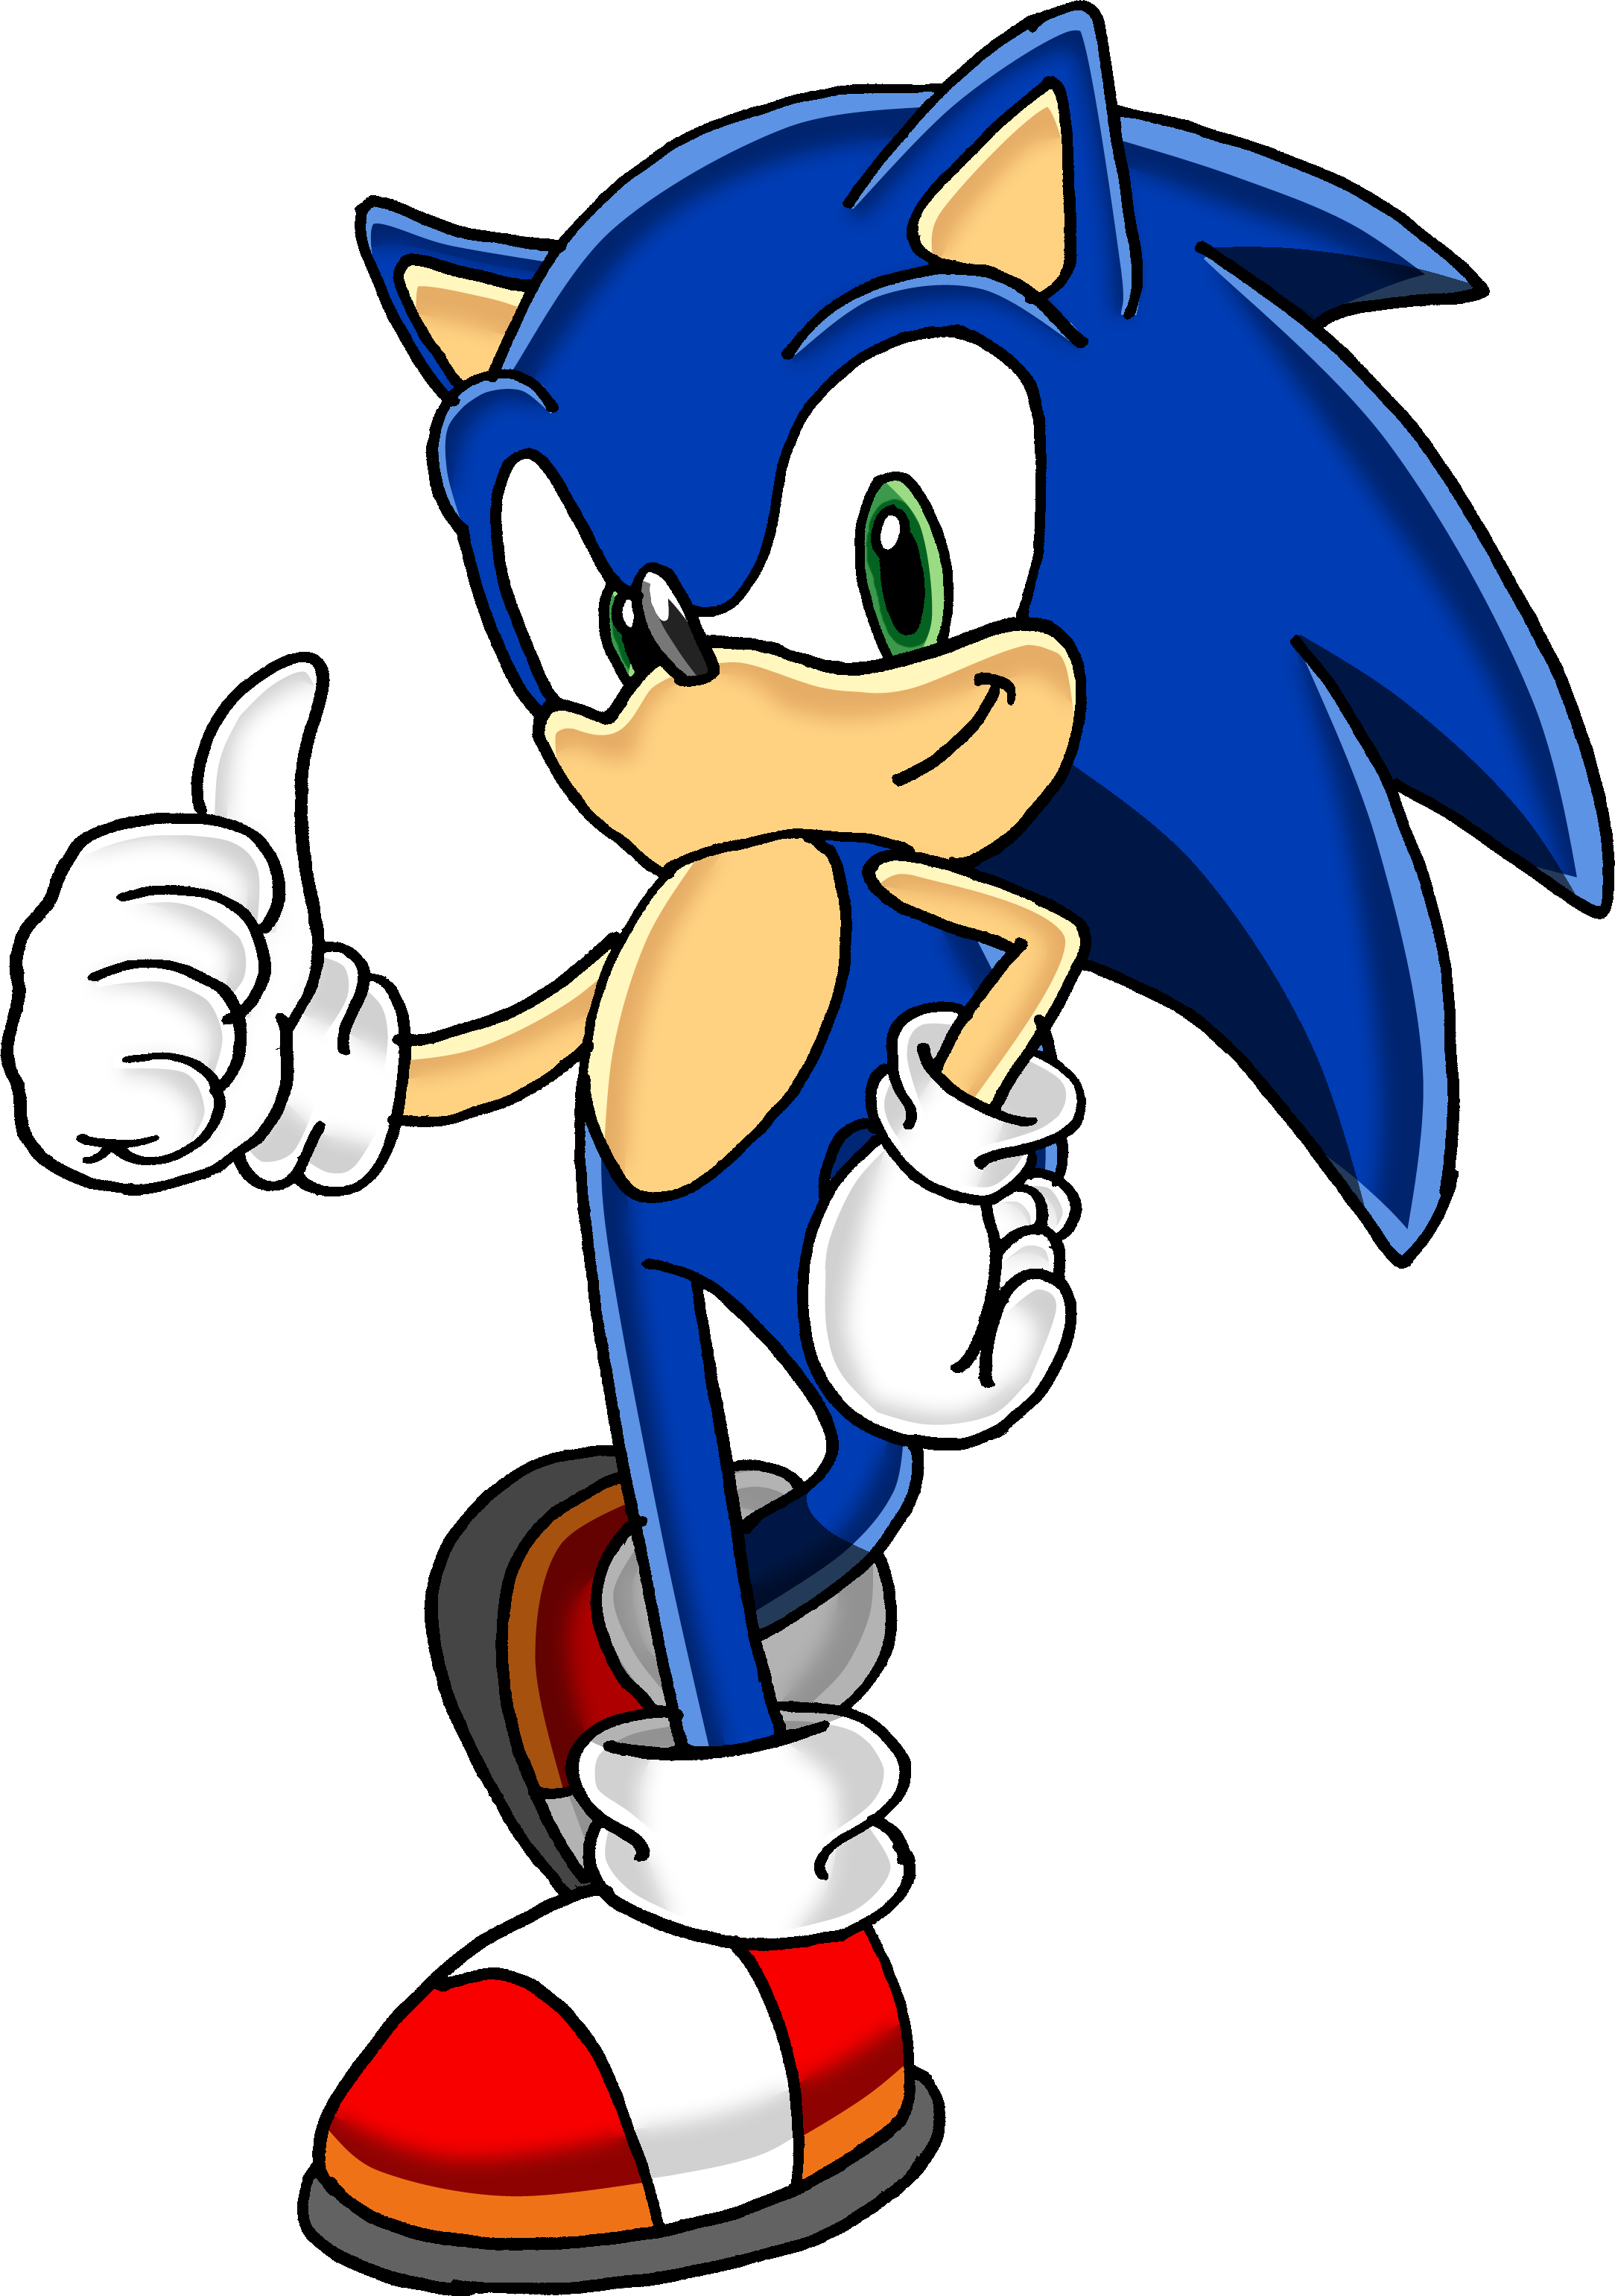 Sonic The Hedgehog PNG Transparent Images.